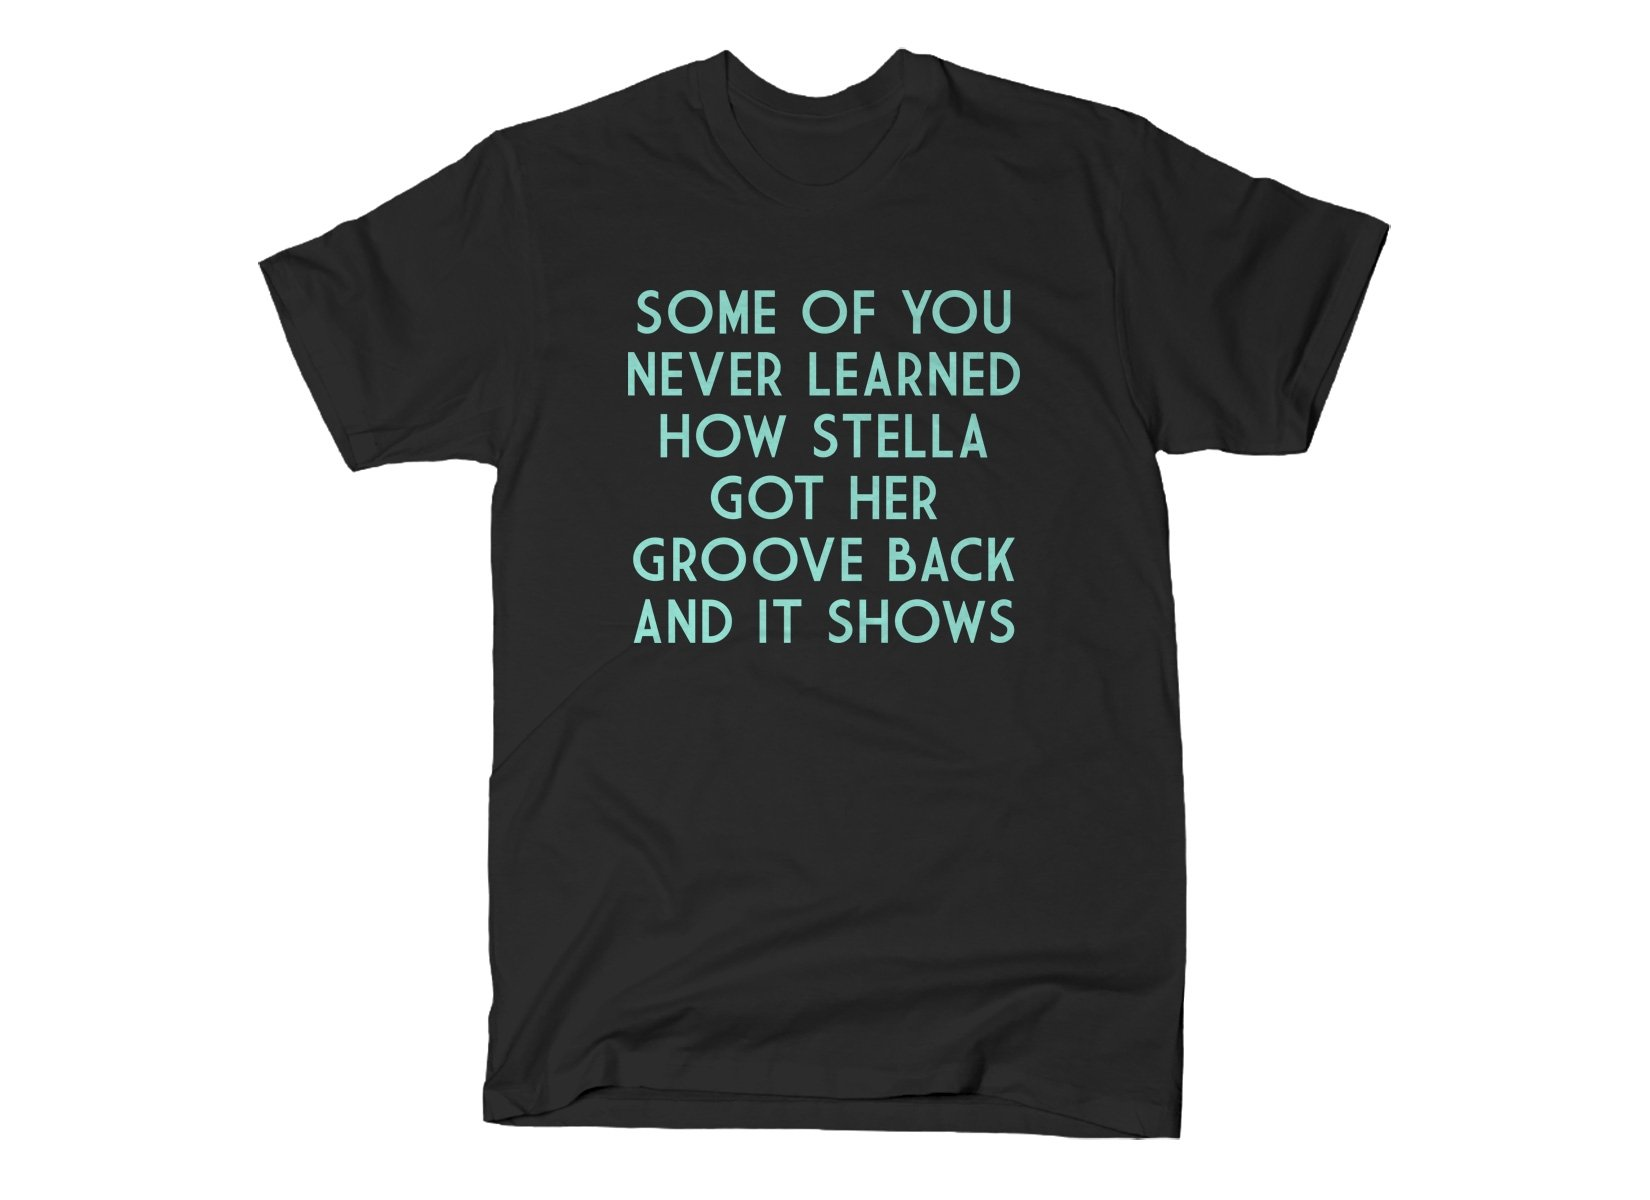 Some Of You Never Learned on Mens T-Shirt